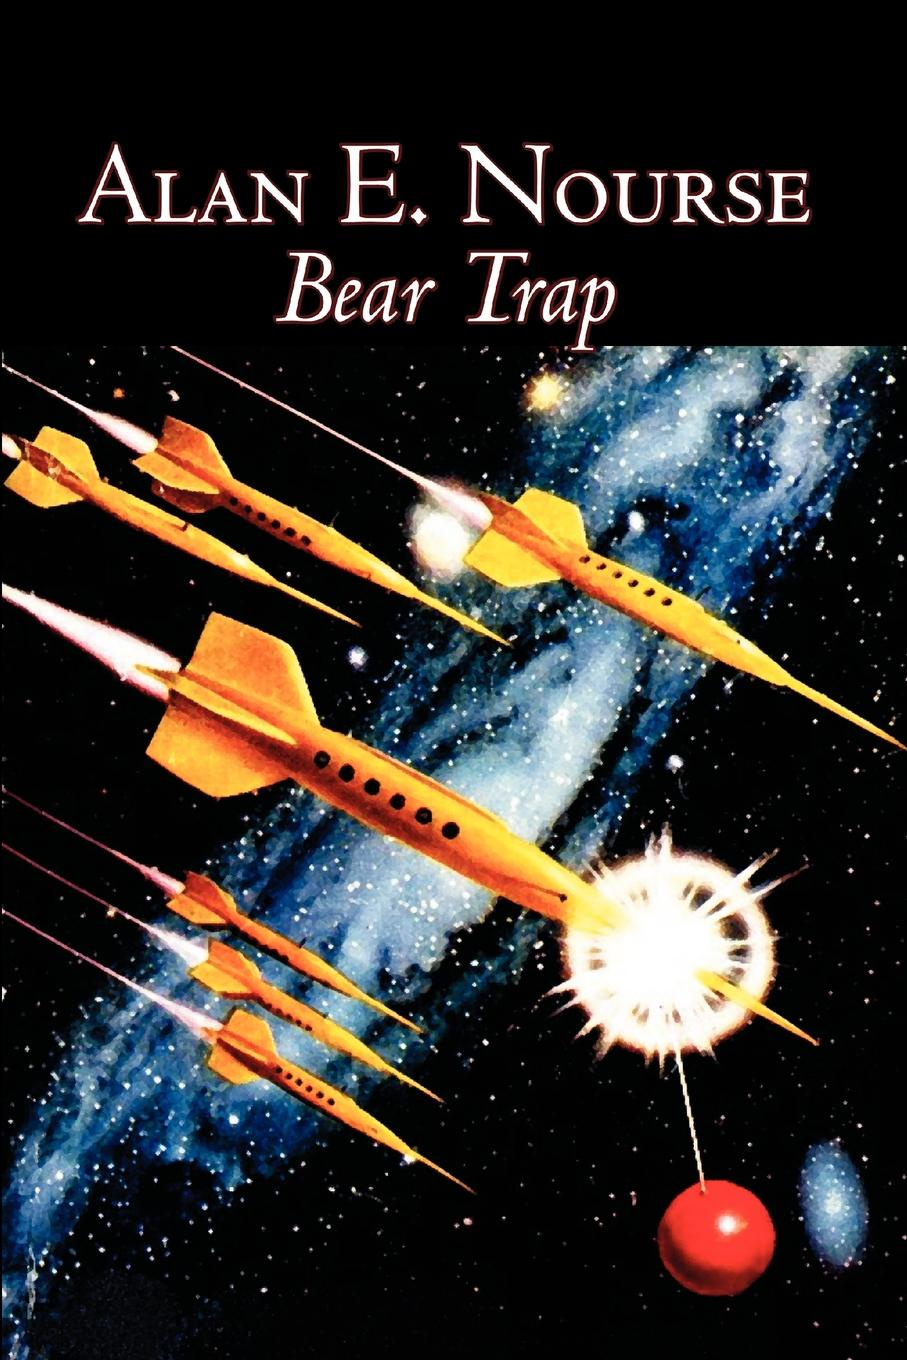 Alan E. Nourse Bear Trap by Alan E. Nourse, Science Fiction, Fantasy, Adventure emma page in the event of my death